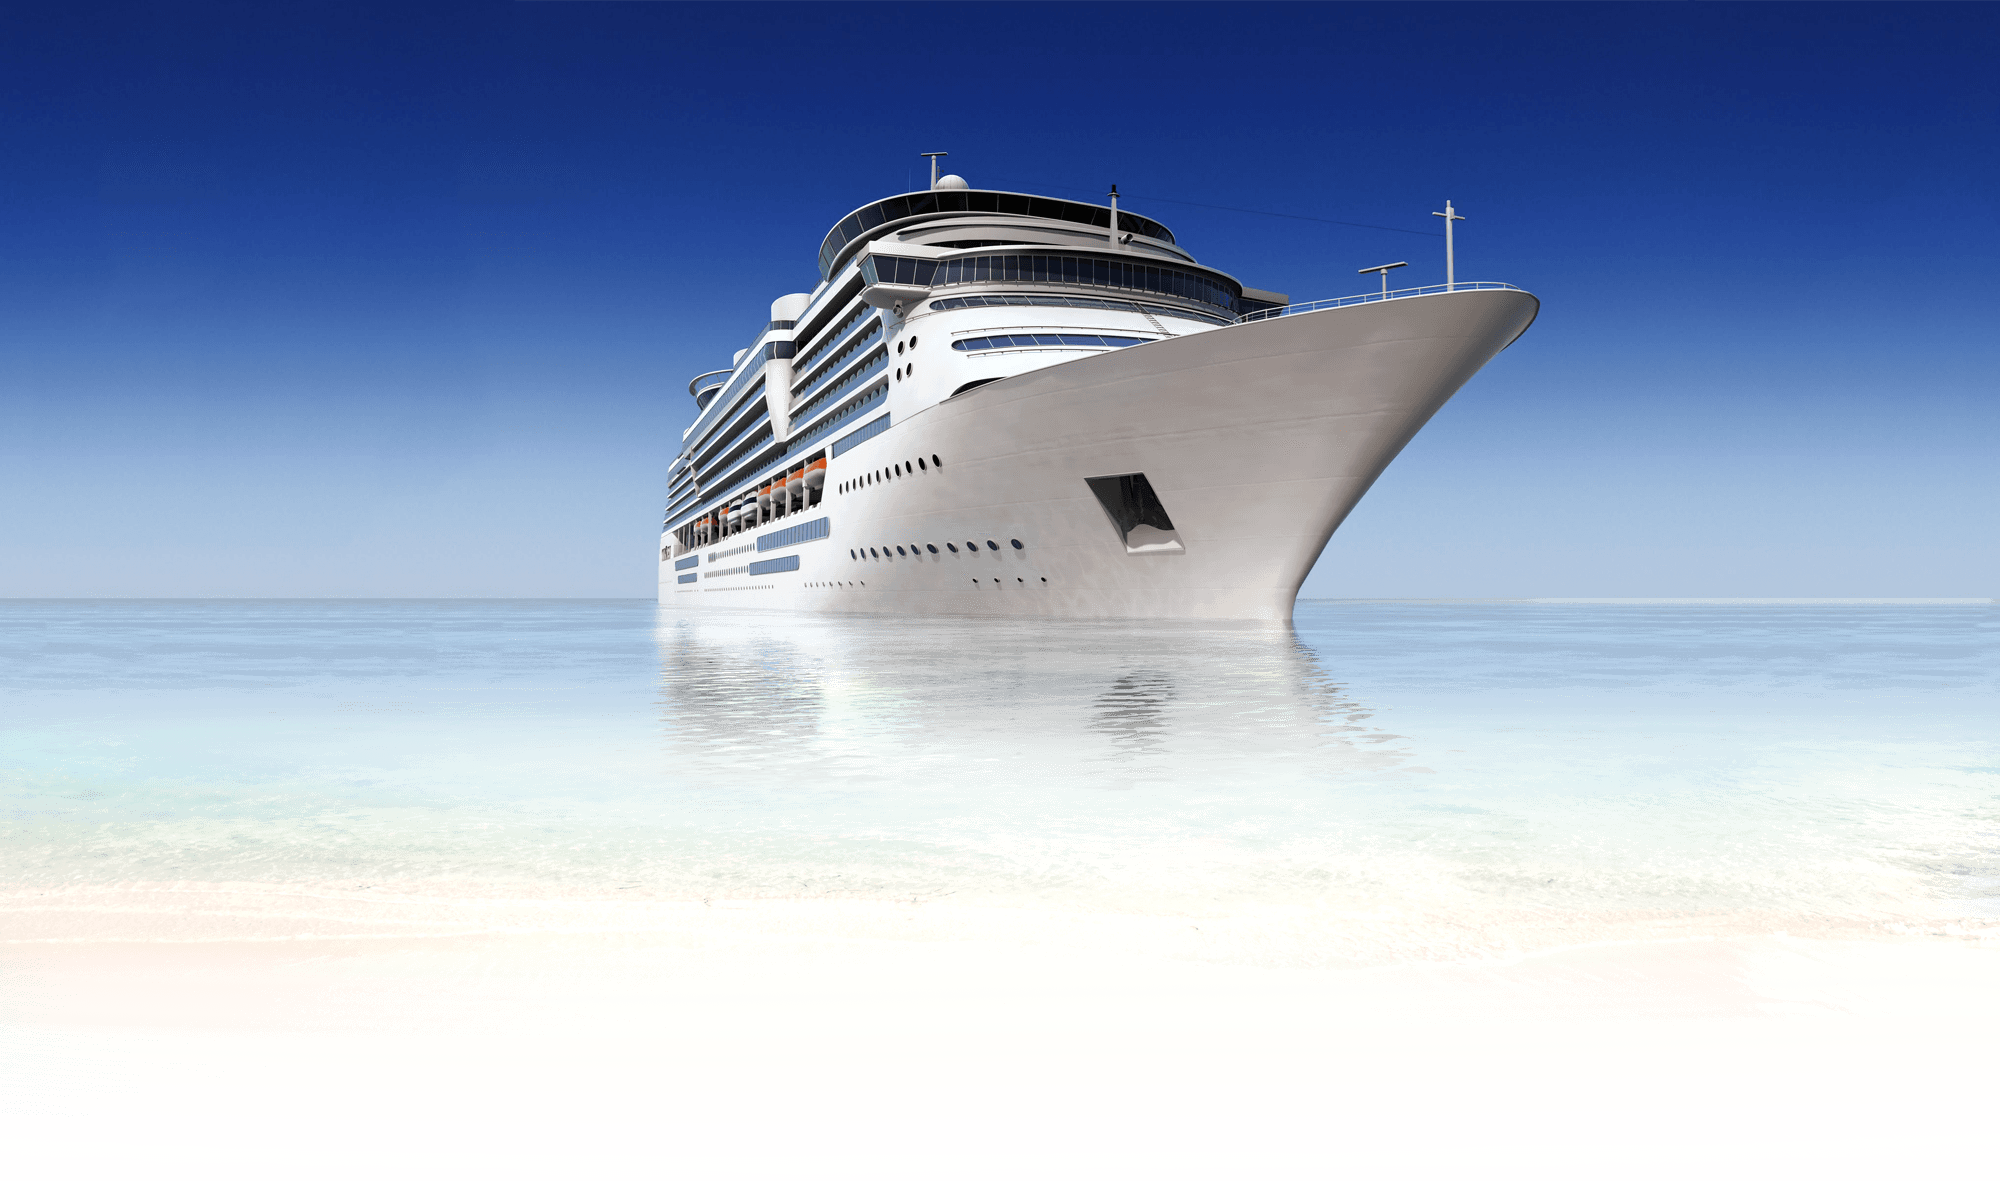 Carnival cruise ship png. Injury lawyer accident attorney